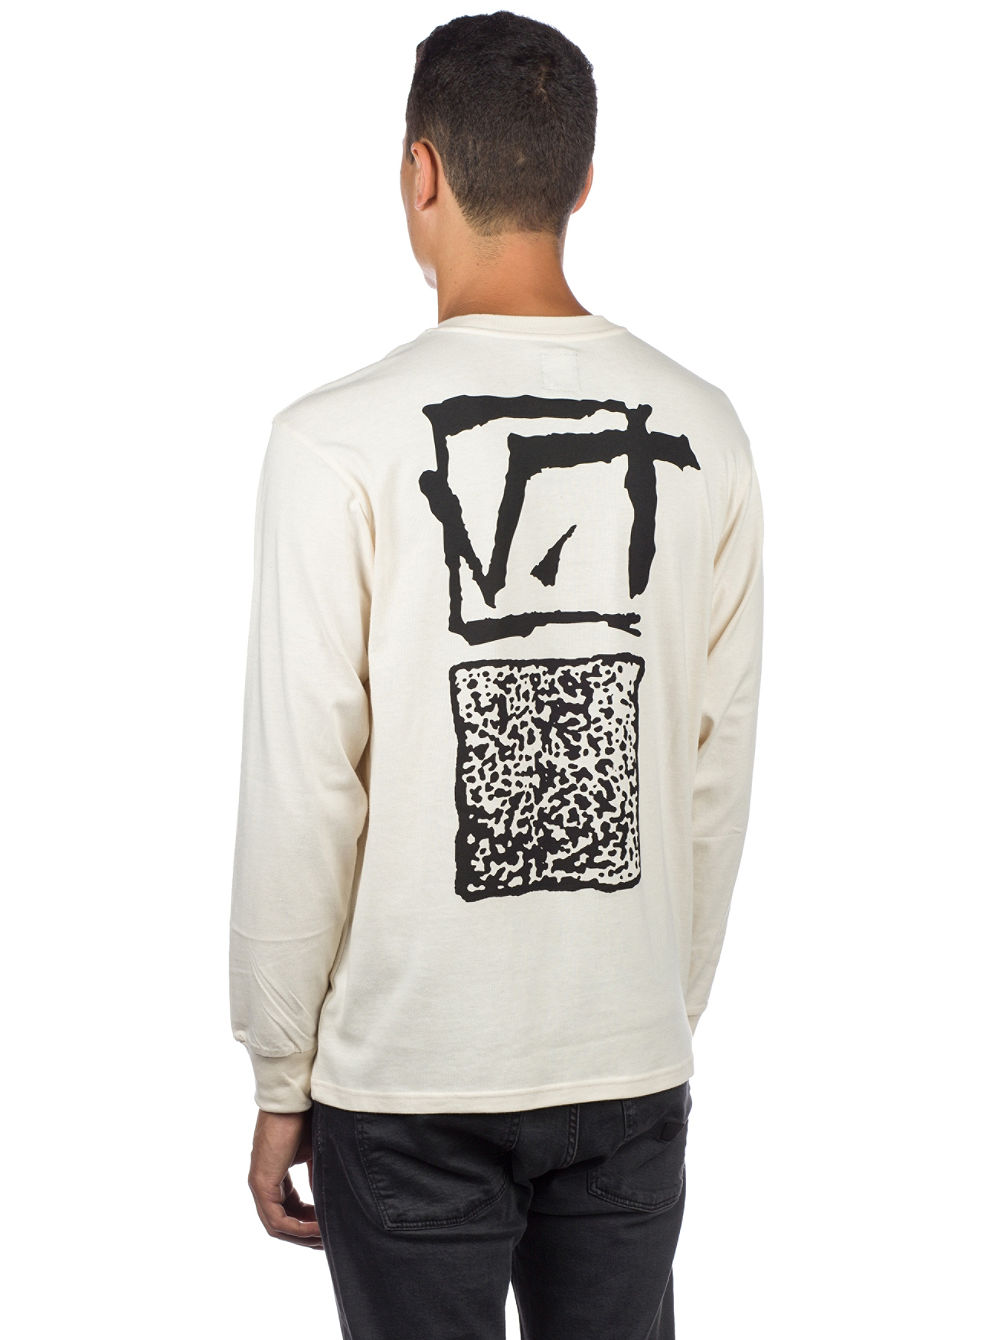 e66839a655d3 Buy Vans Square Root Long Sleeve T-Shirt online at Blue Tomato